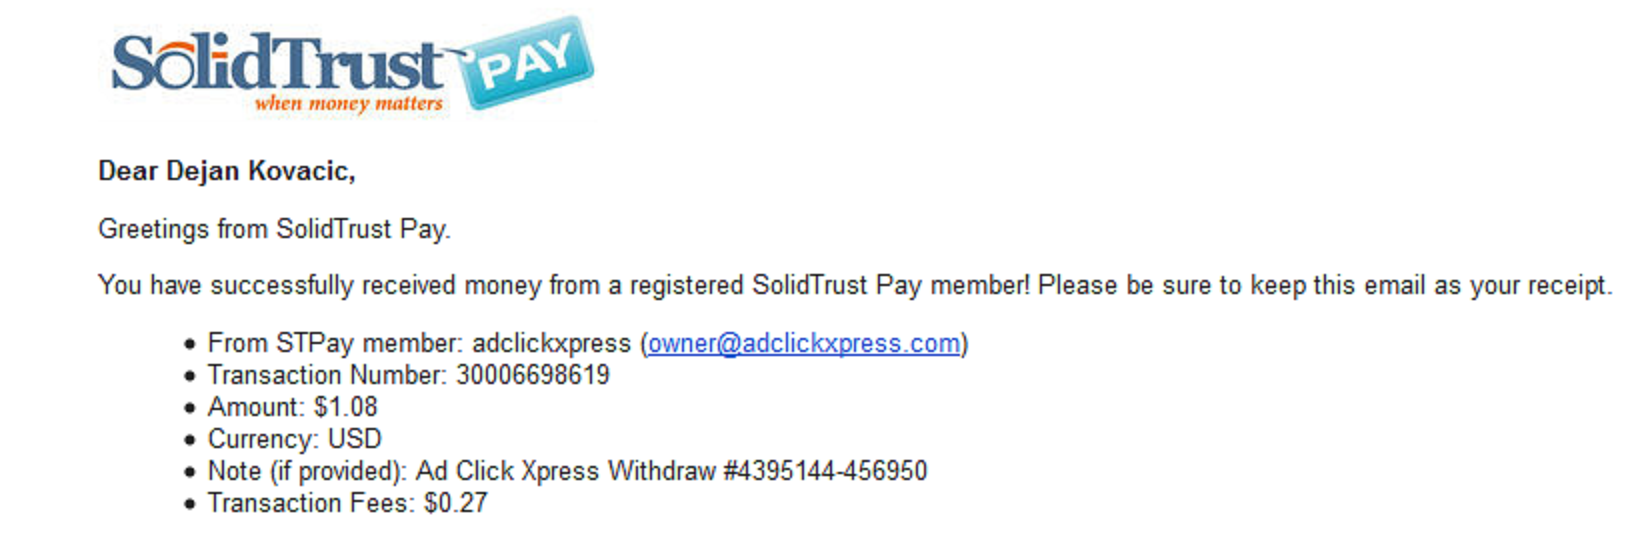 If you are a PASSIVE INCOME SEEKER, then AdClickXpress (Ad Click Xpress) is the best ONLINE OPPORTUNITY for you. Here is my Withdrawal Proof from AdClickXpress. I get paid daily and I can withdraw daily. Online income is possible with ACX, who is definitely paying – no scam here  https://twitter.com/svathh/status/759677217232326657